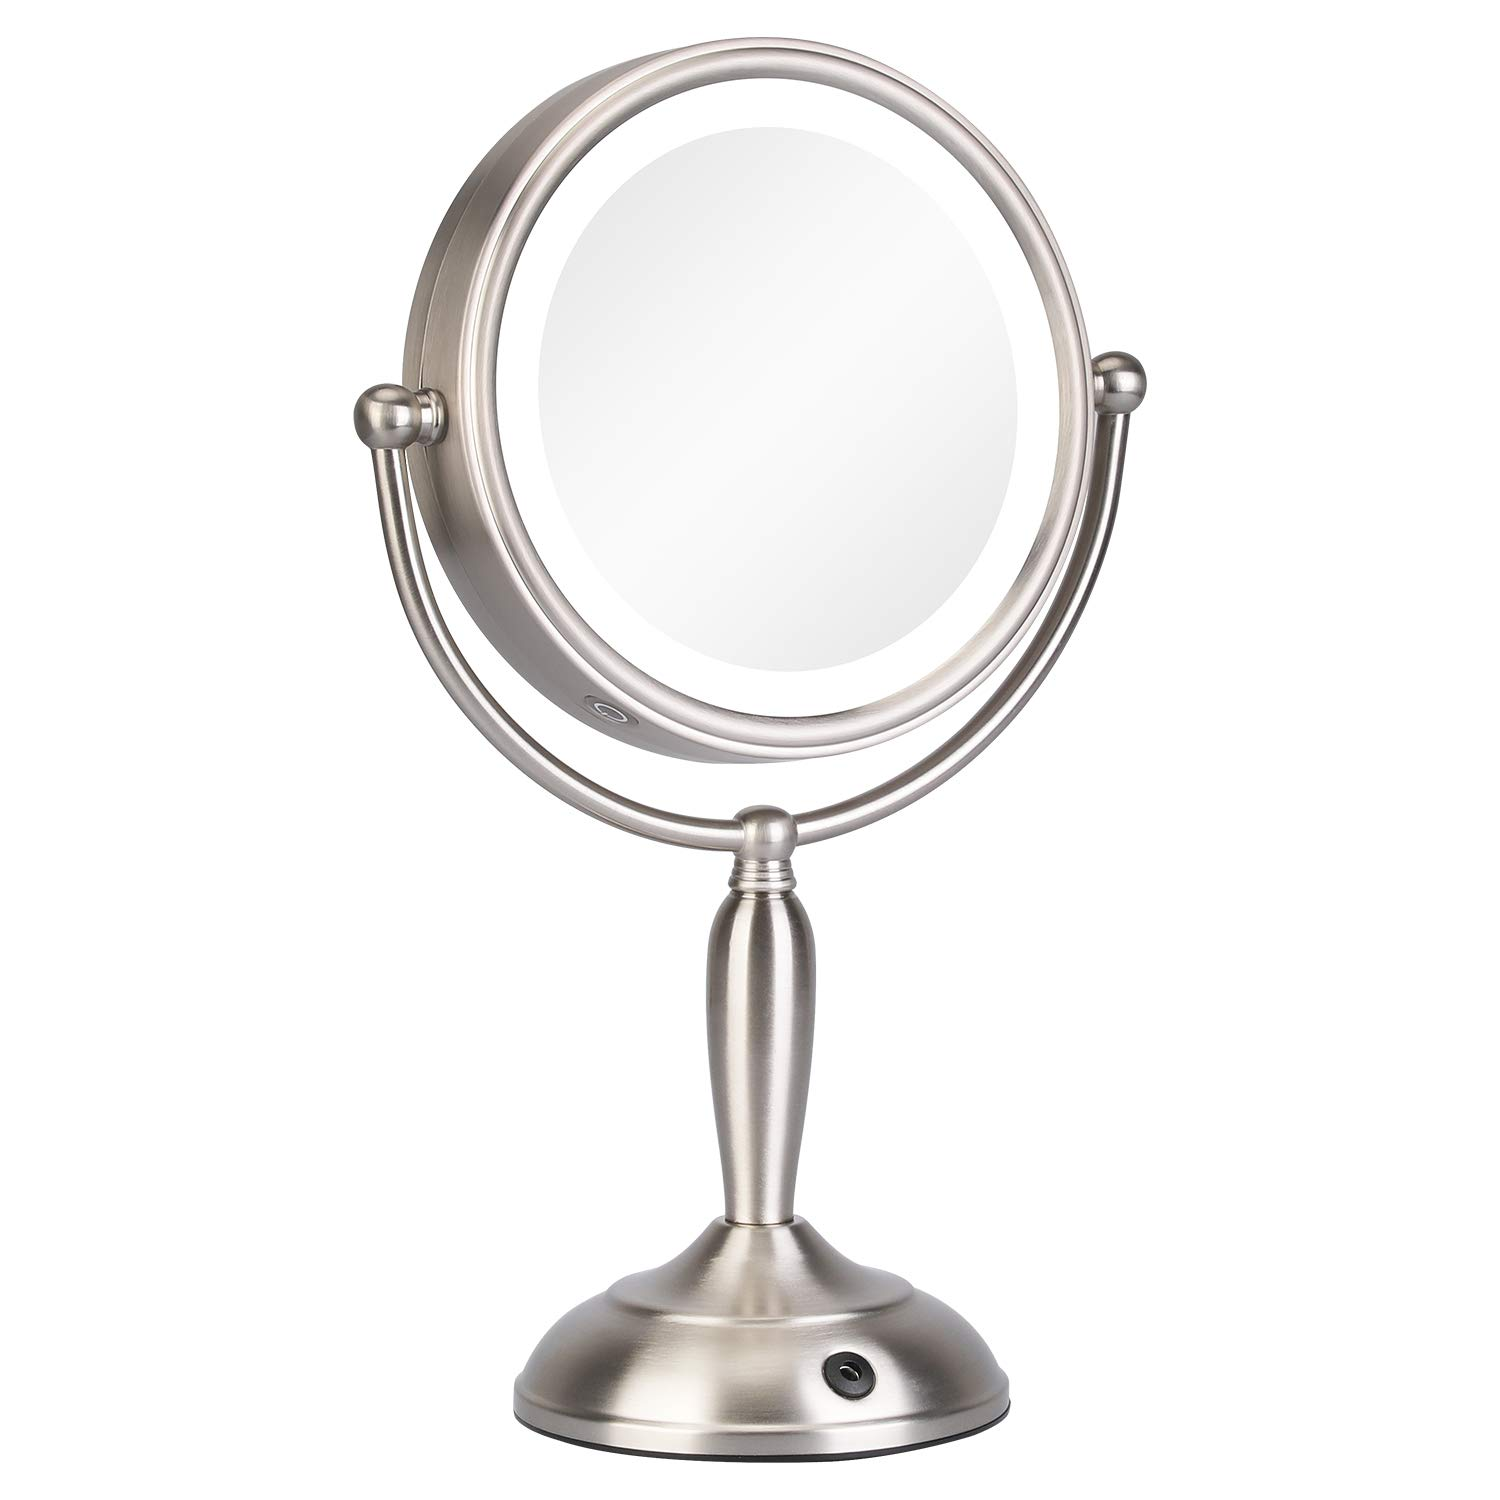 KEDSUM 8 Inch 1X/10X Lighted Magnifying Makeup Mirror with 3 Lighting Modes, Double Sided Magnification Vanity Mirror with Lights, Cordless Tabletop Mirror, Touch Button & Dual Power Supply